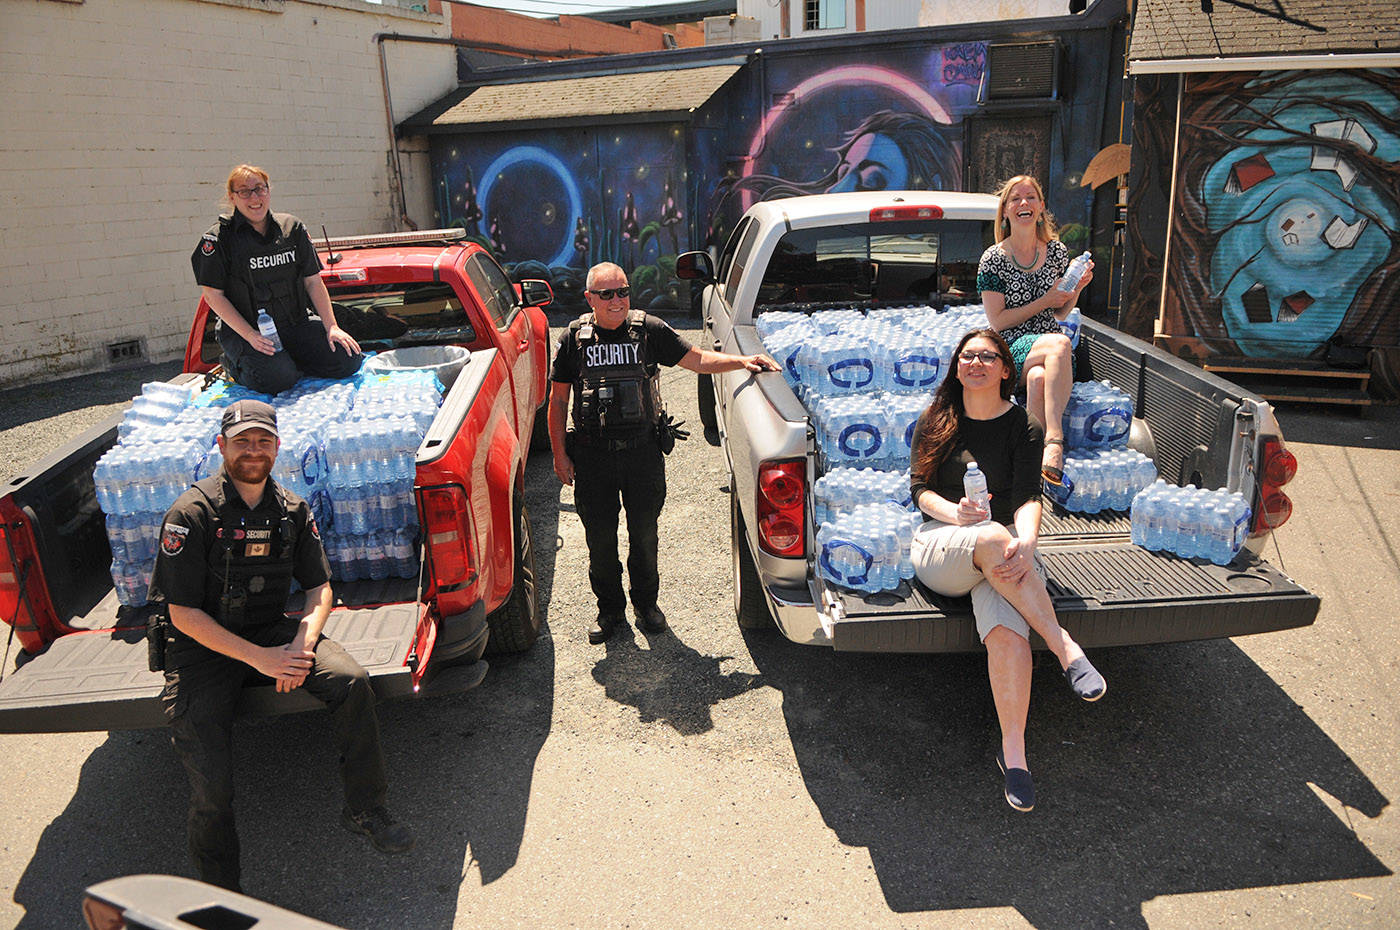 From left, Cody Mendel, Sabrina Peterson and Brian Goldstone (all from Griffin Security) along with Trisha Mercer and Amber Price were all part of collecting donations of bottled water that will be handed out to Chilliwack's homeless community and others. They are seen here on Tuesday, June 22, 2021. (Jenna Hauck/ Chilliwack Progress)